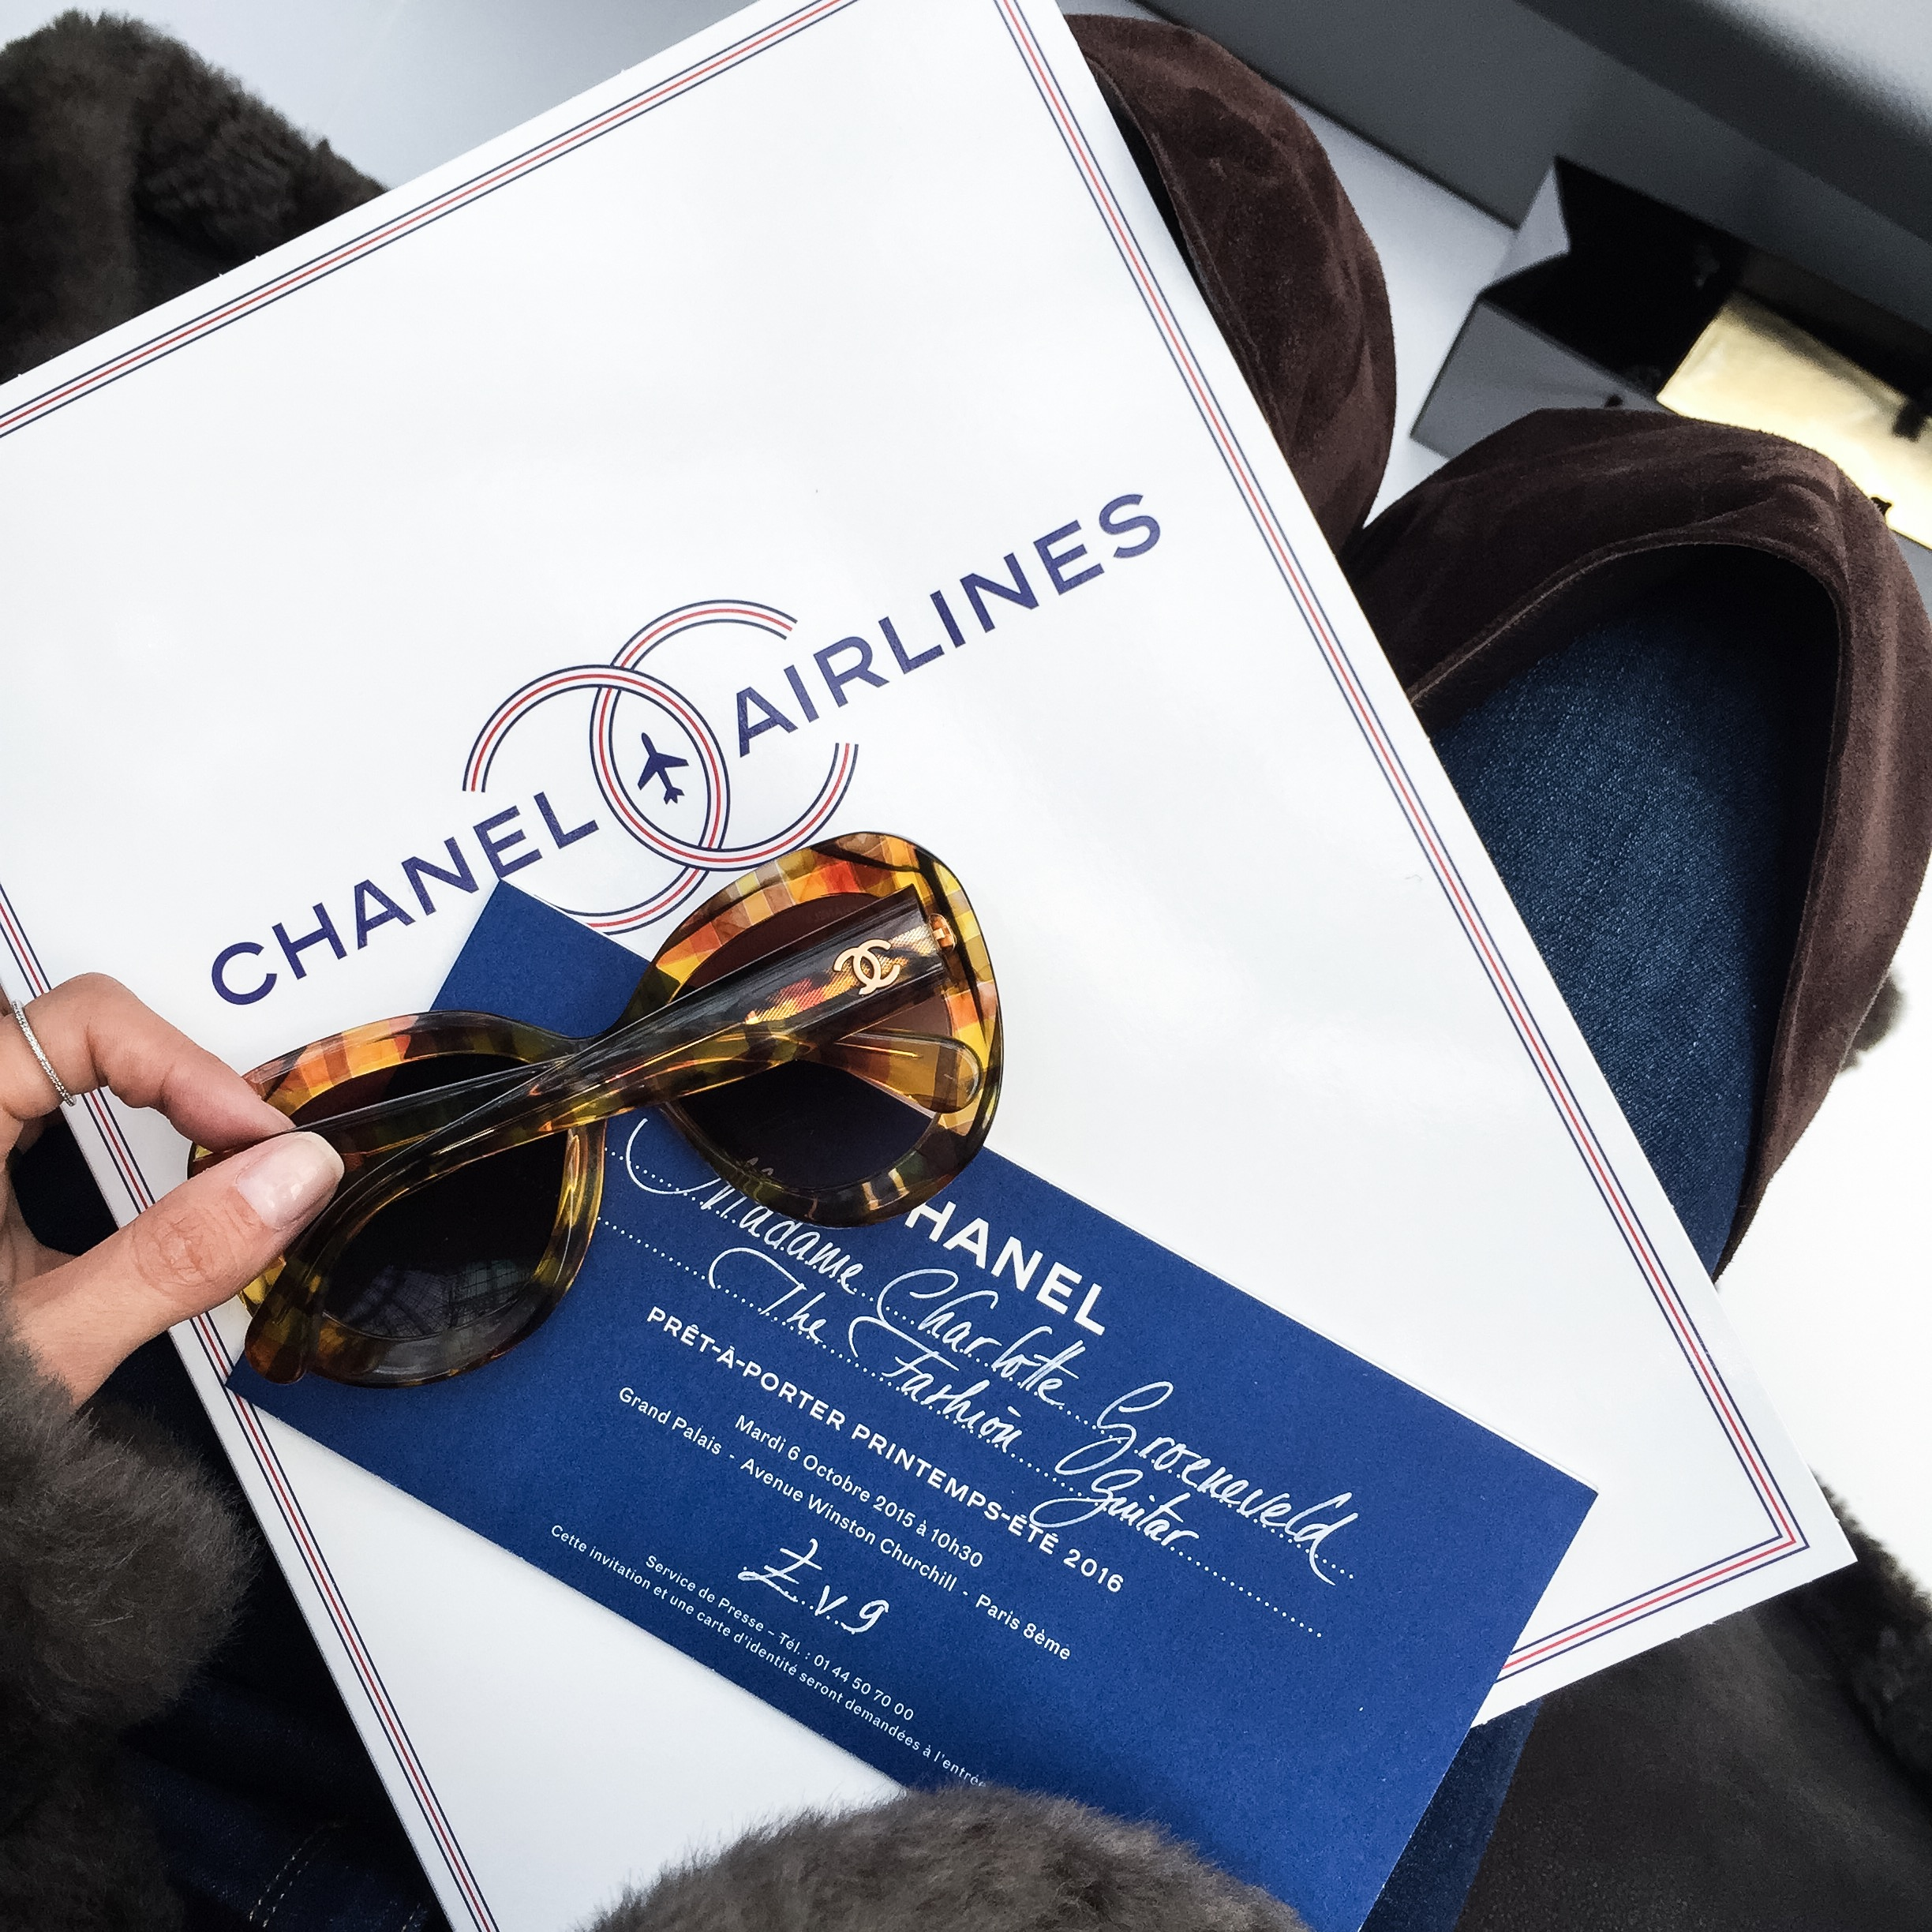 Chanel Airlines | THEFASHIONGUITAR